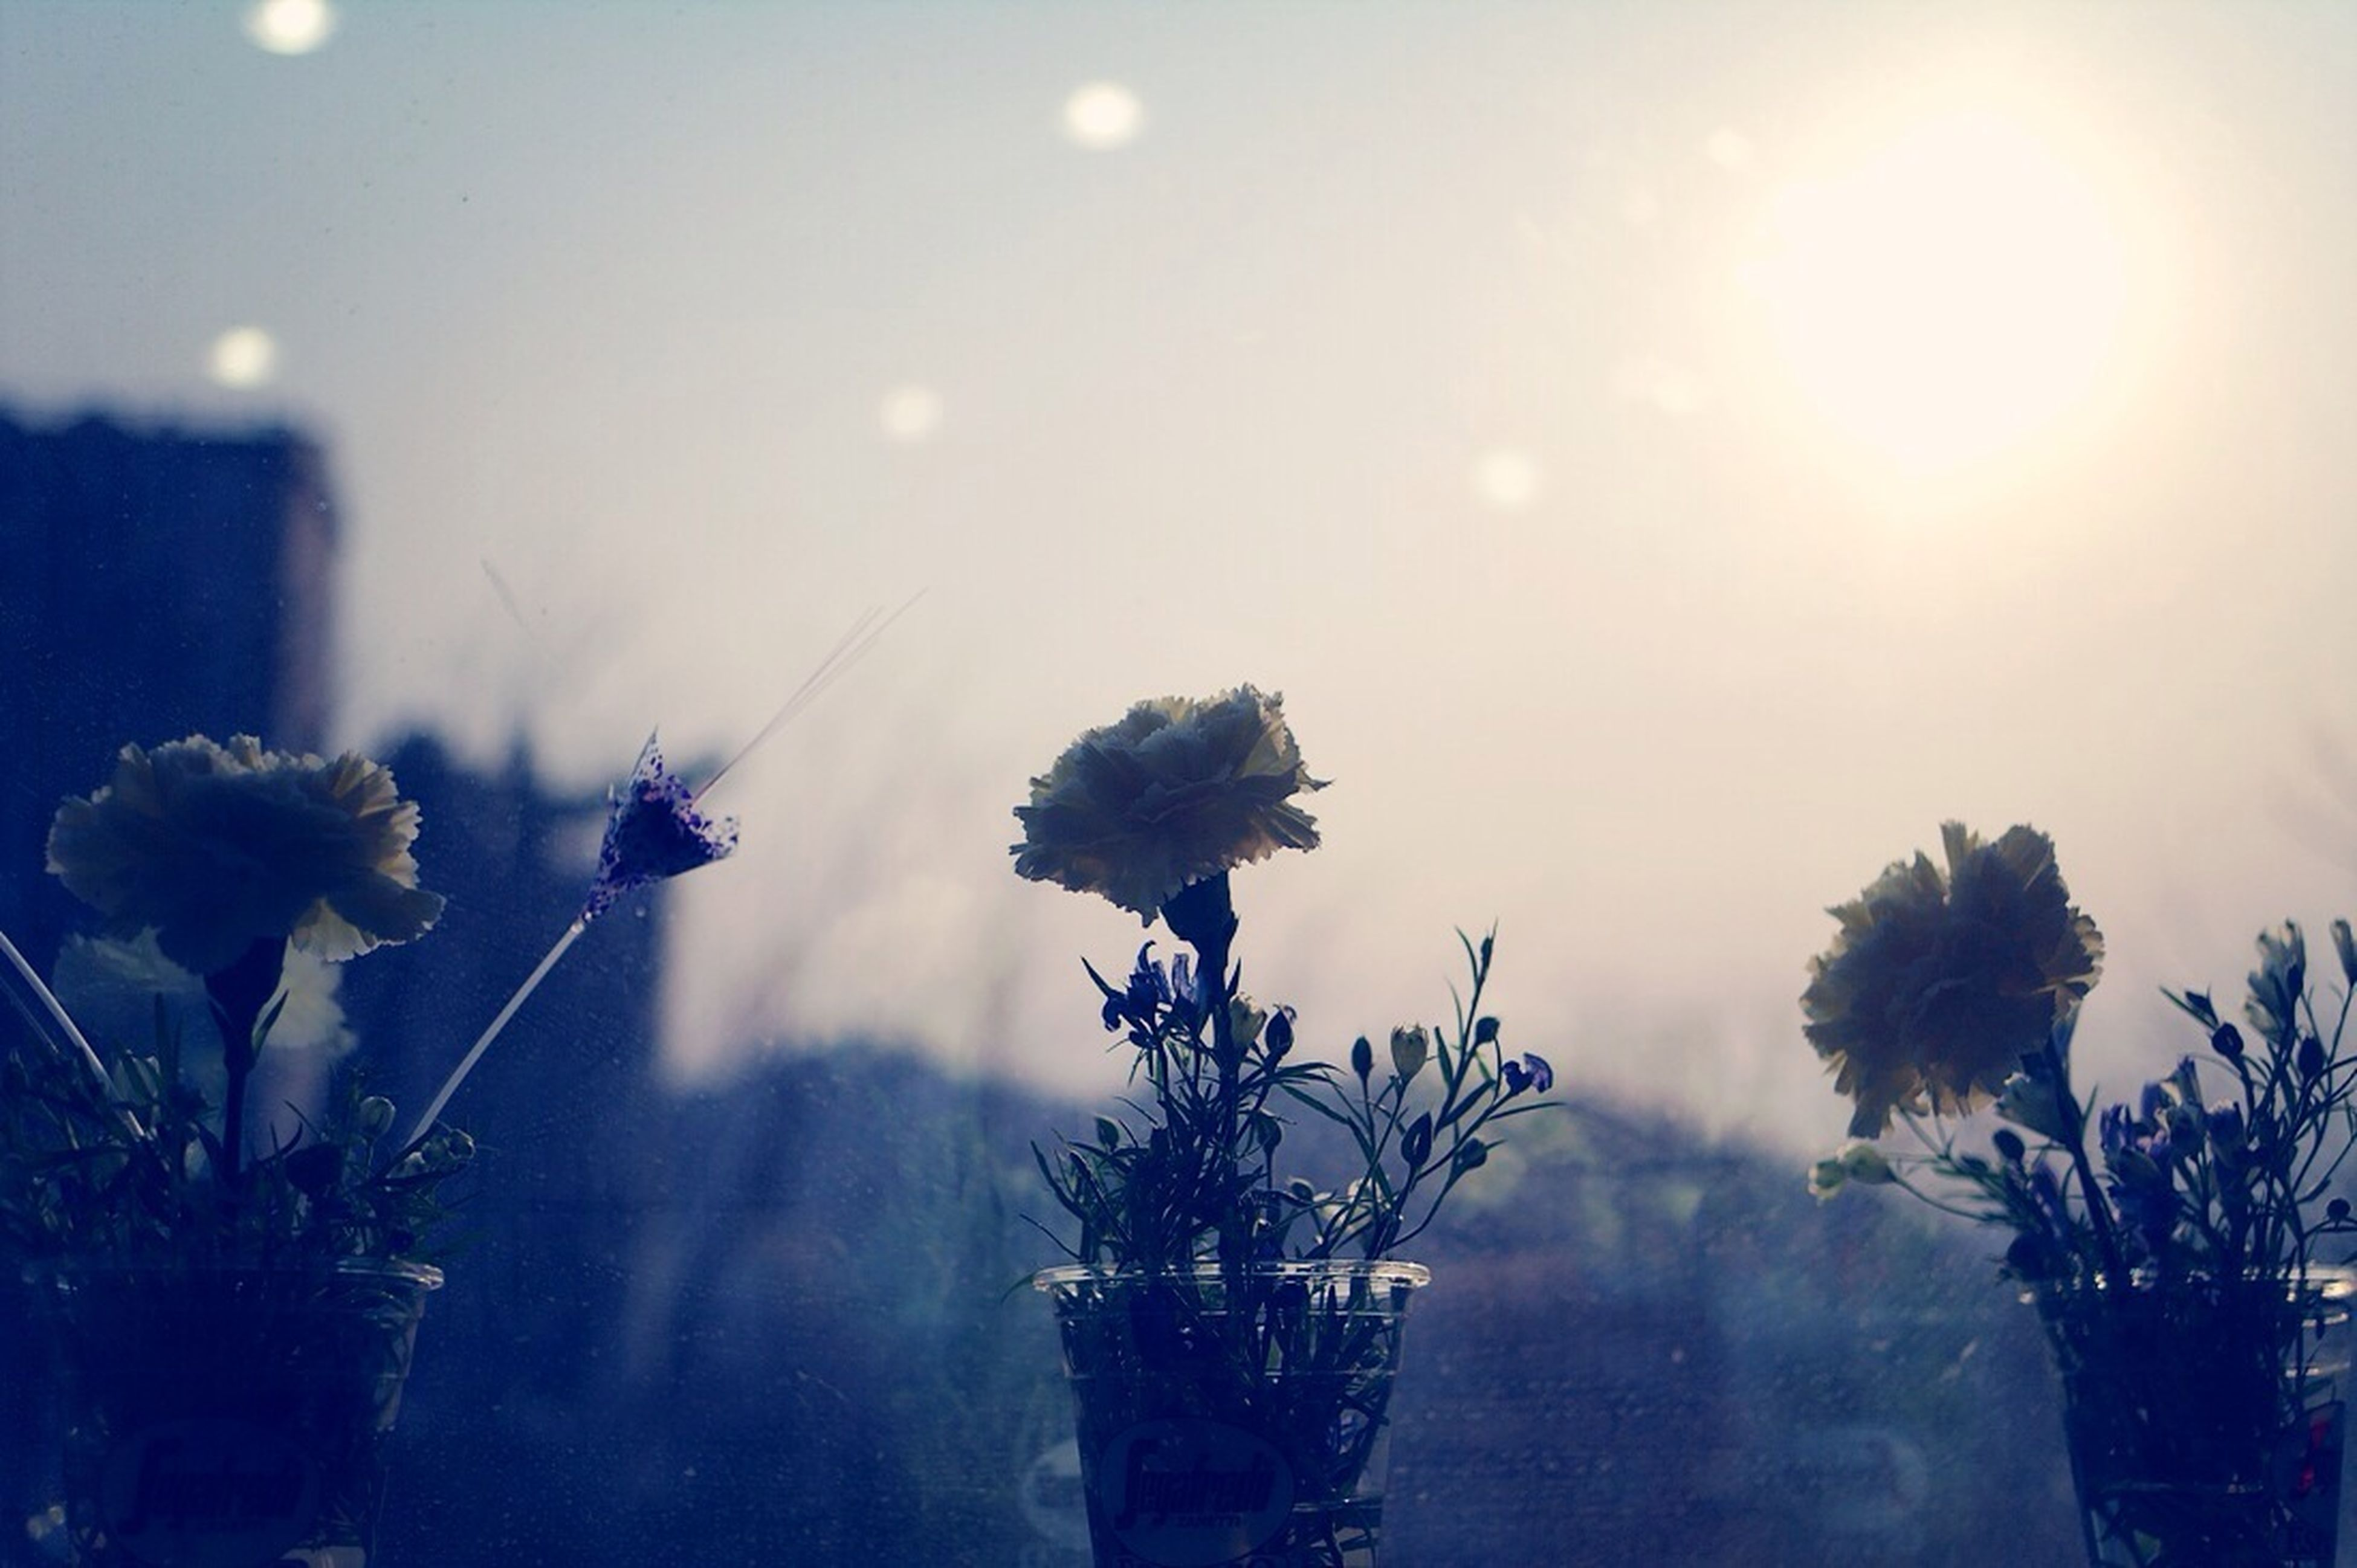 sun, flower, growth, lens flare, plant, fragility, sunbeam, freshness, focus on foreground, sunlight, nature, beauty in nature, sky, stem, close-up, no people, day, outdoors, bright, tree